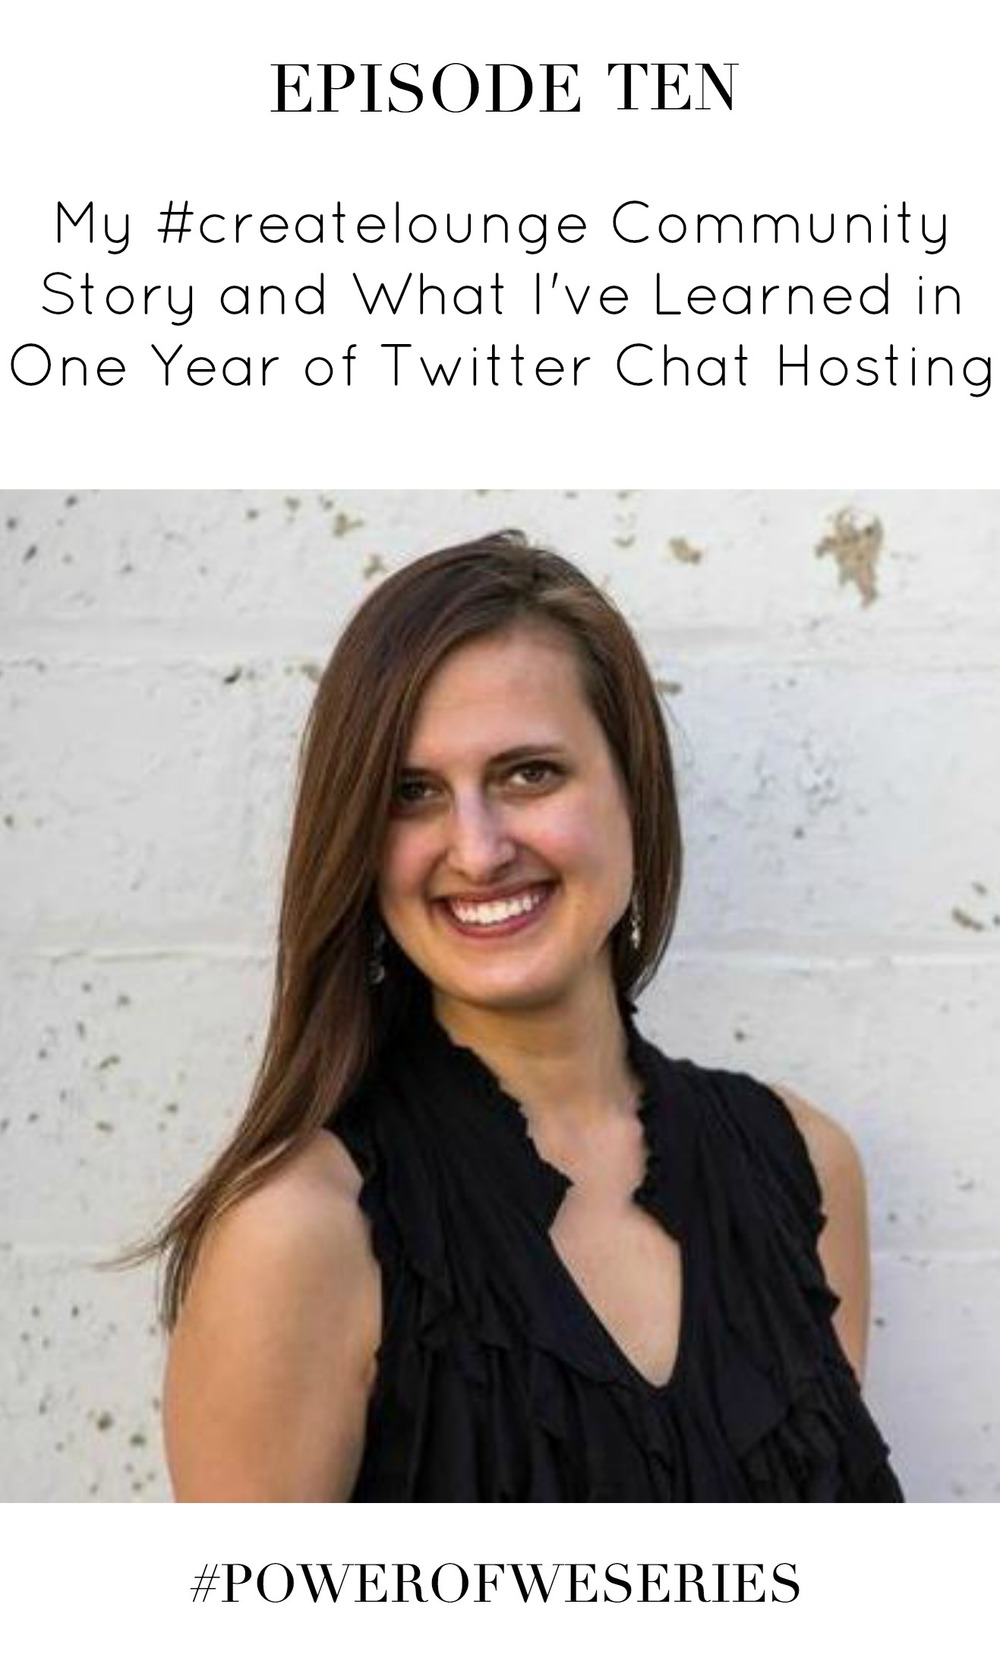 My #createlounge Community Story and What I've Learned in One Year of Twitter Chat Hosting with Kayla Hollatz | #PowerOfWeSeries